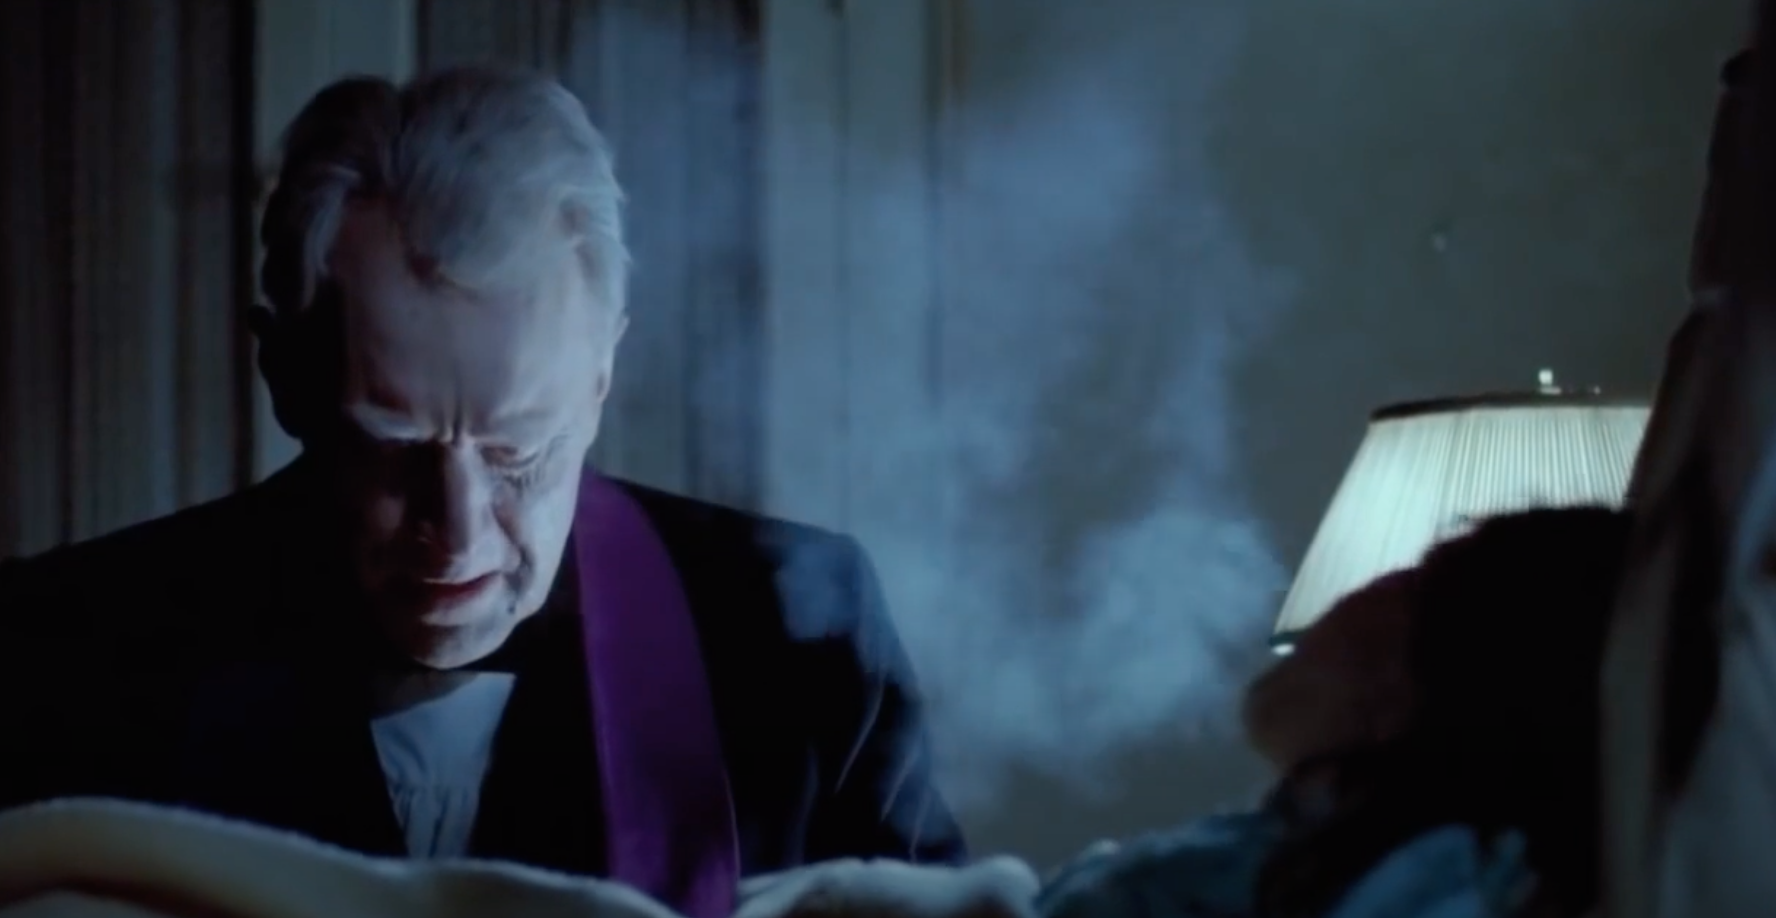 A priest sits next to young girl while performing an exorcism.